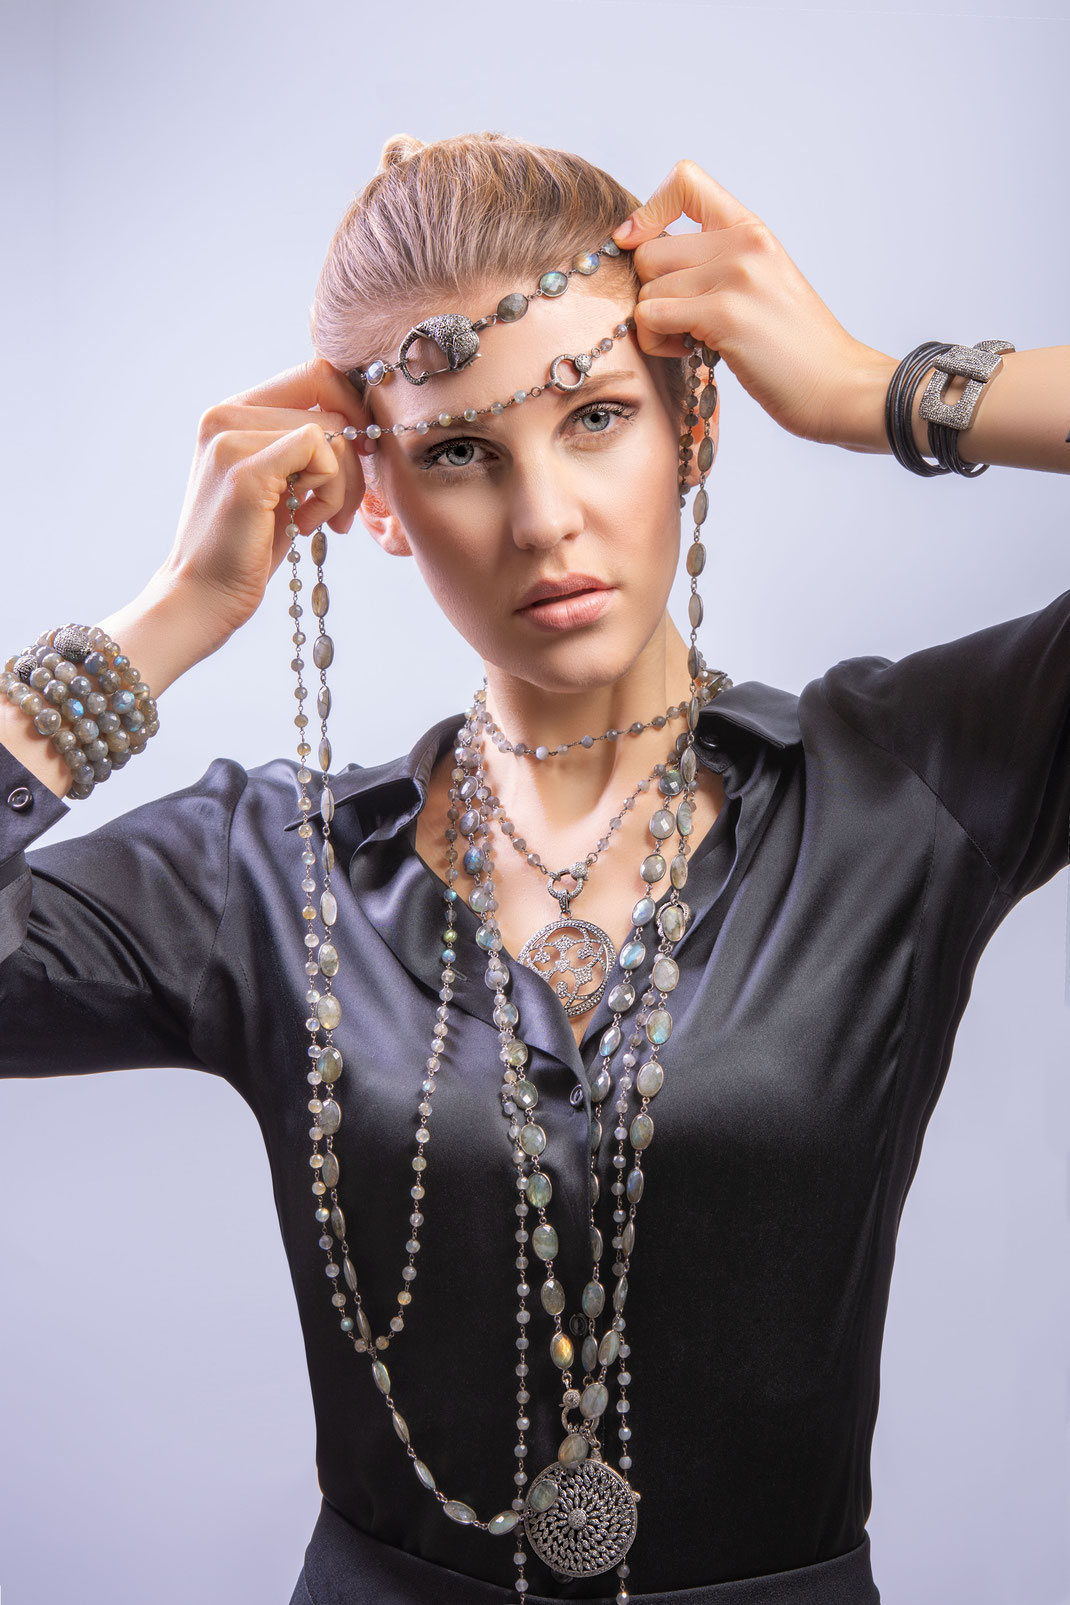 long casual elegant necklaces with grey diamonds to wrap and to layer completed with bracelets